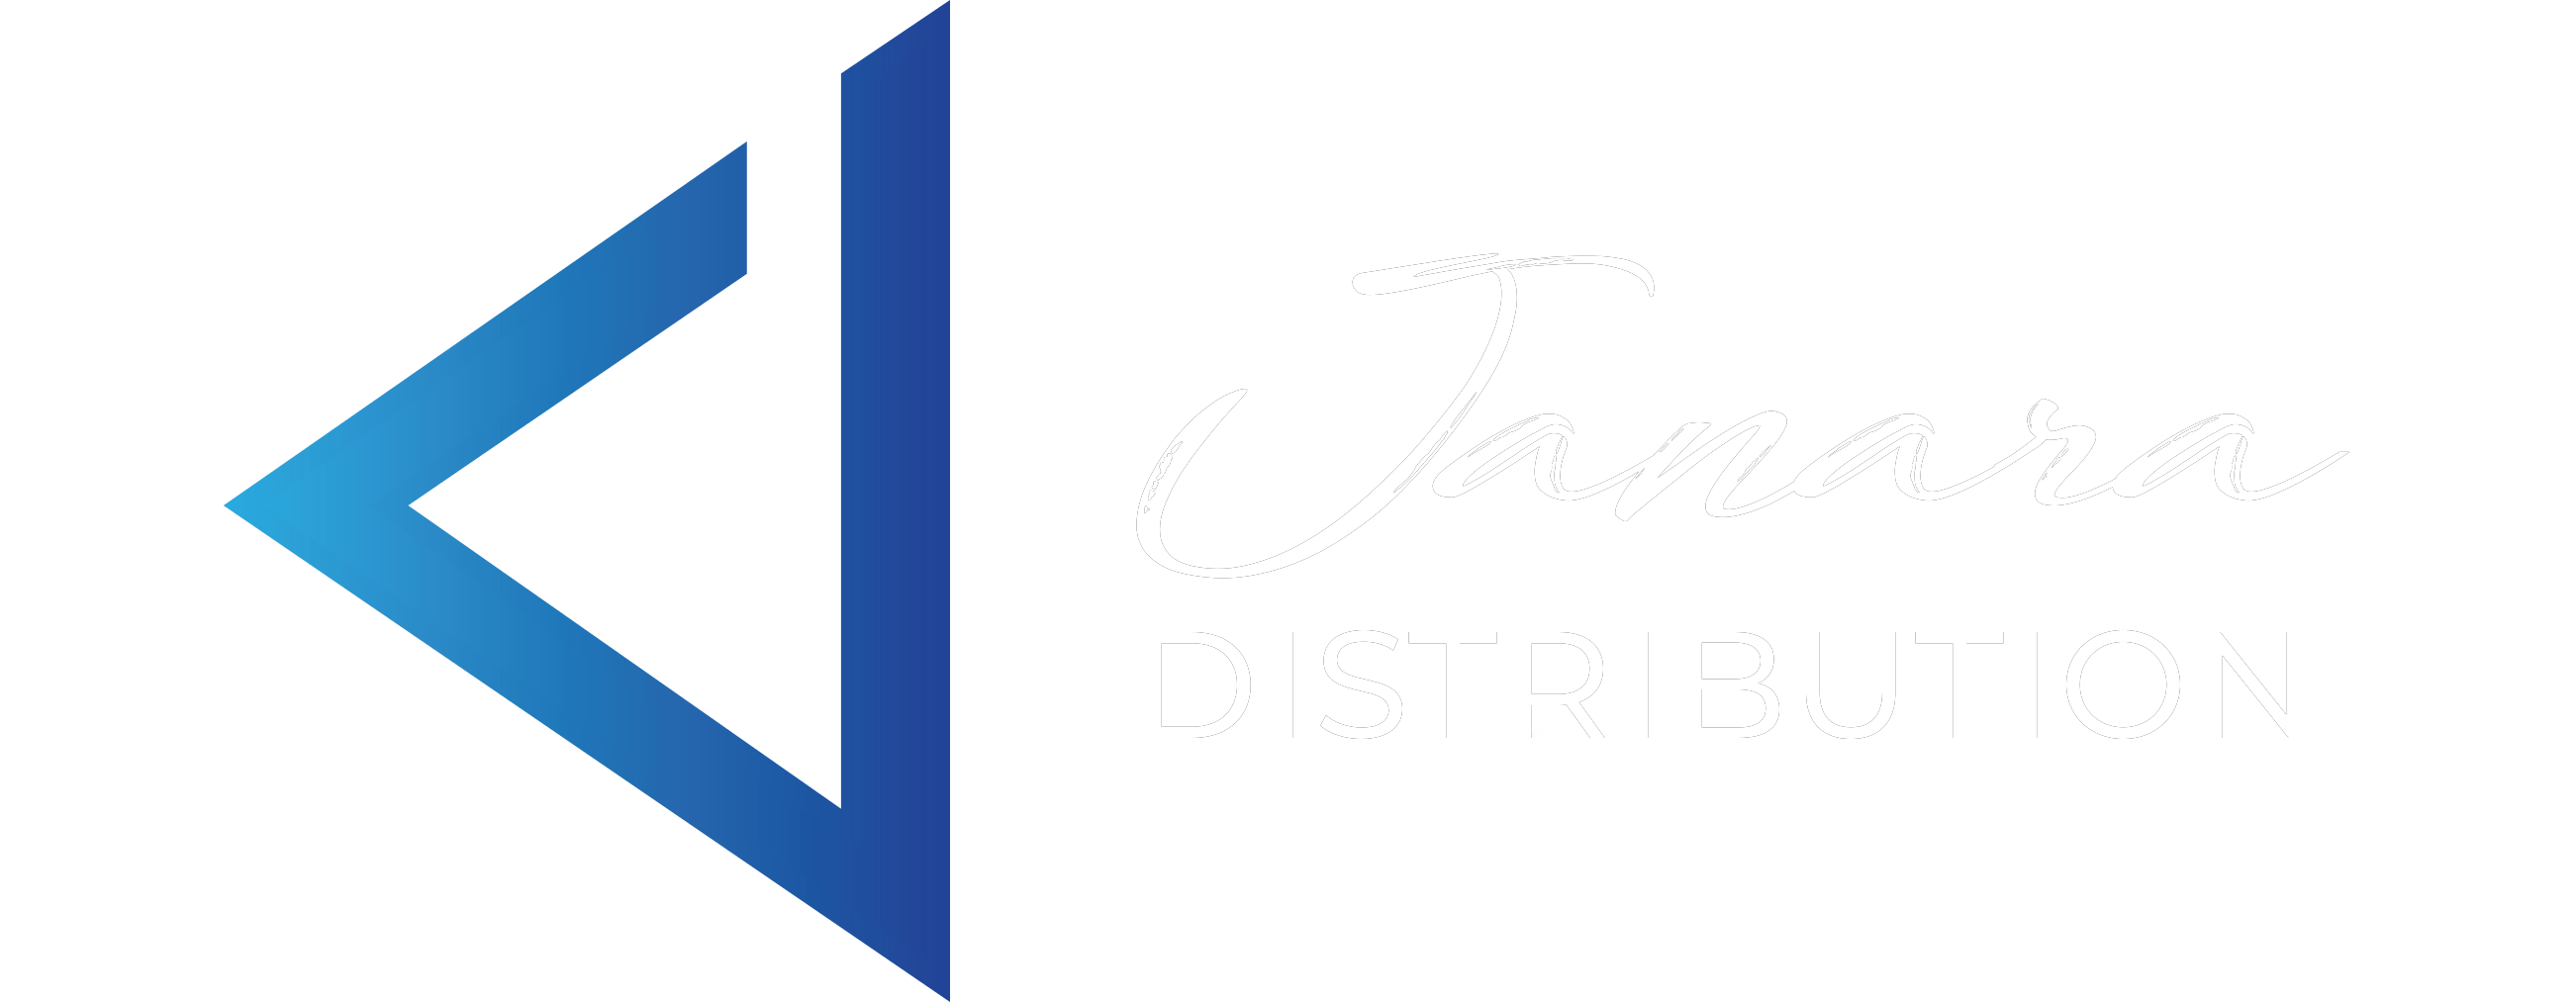 Janara Distribution